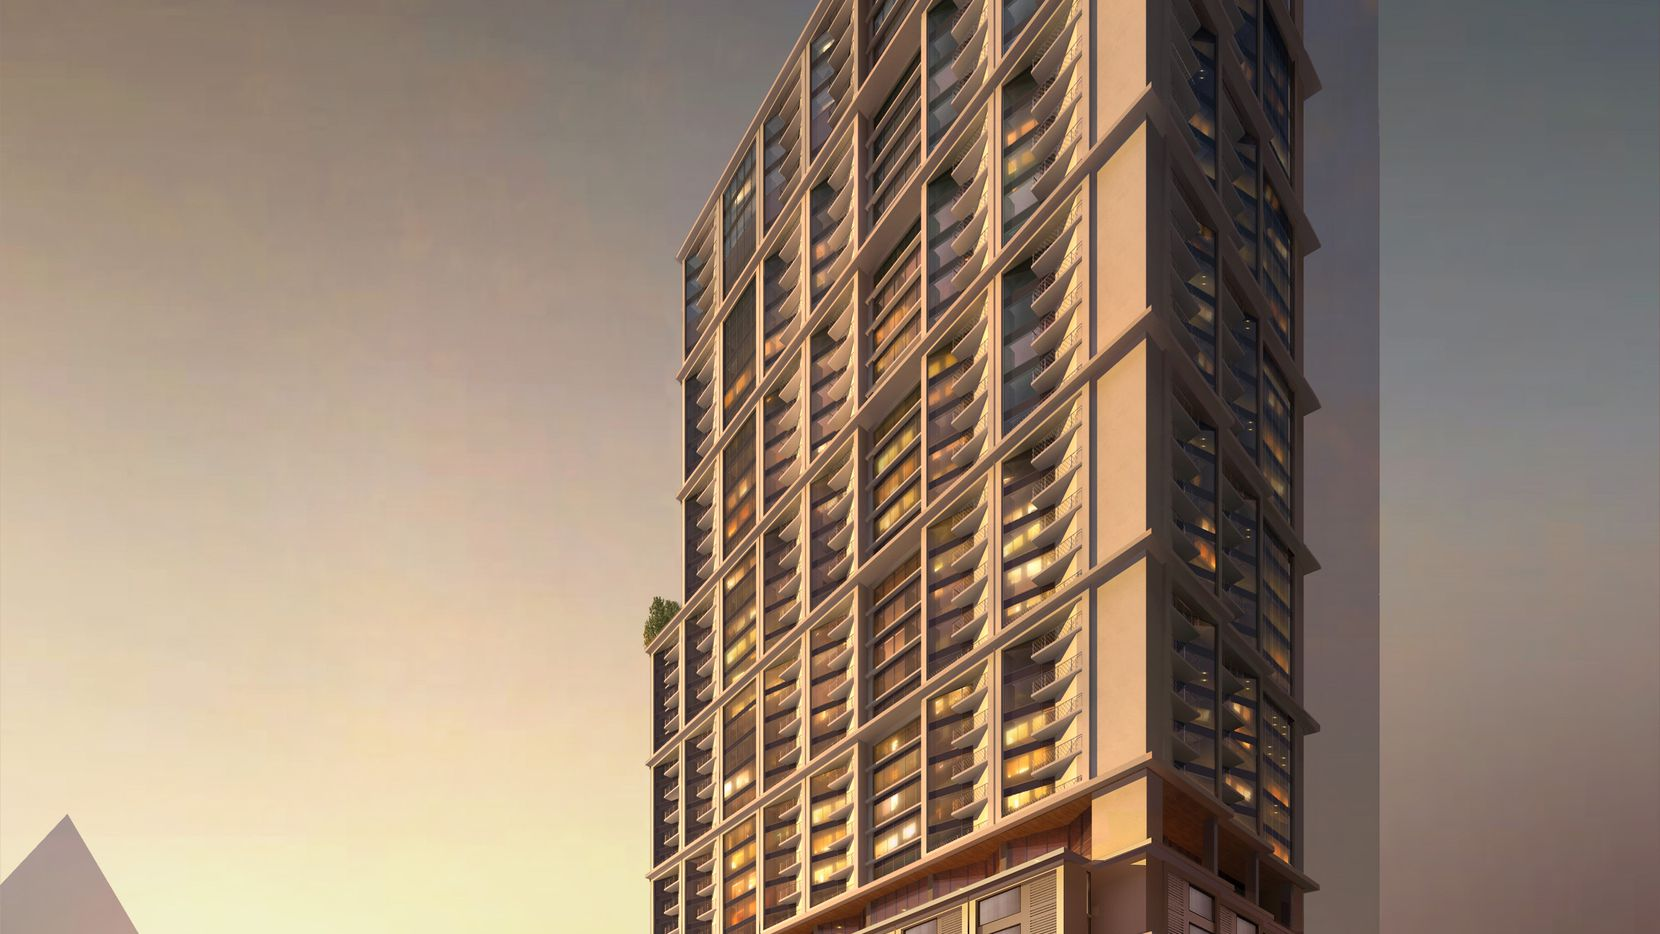 A  40-story tower planned for downtown Dallas' Arts District will contain luxury apartments, artist lofts and retail space at Flora and Olive streets.